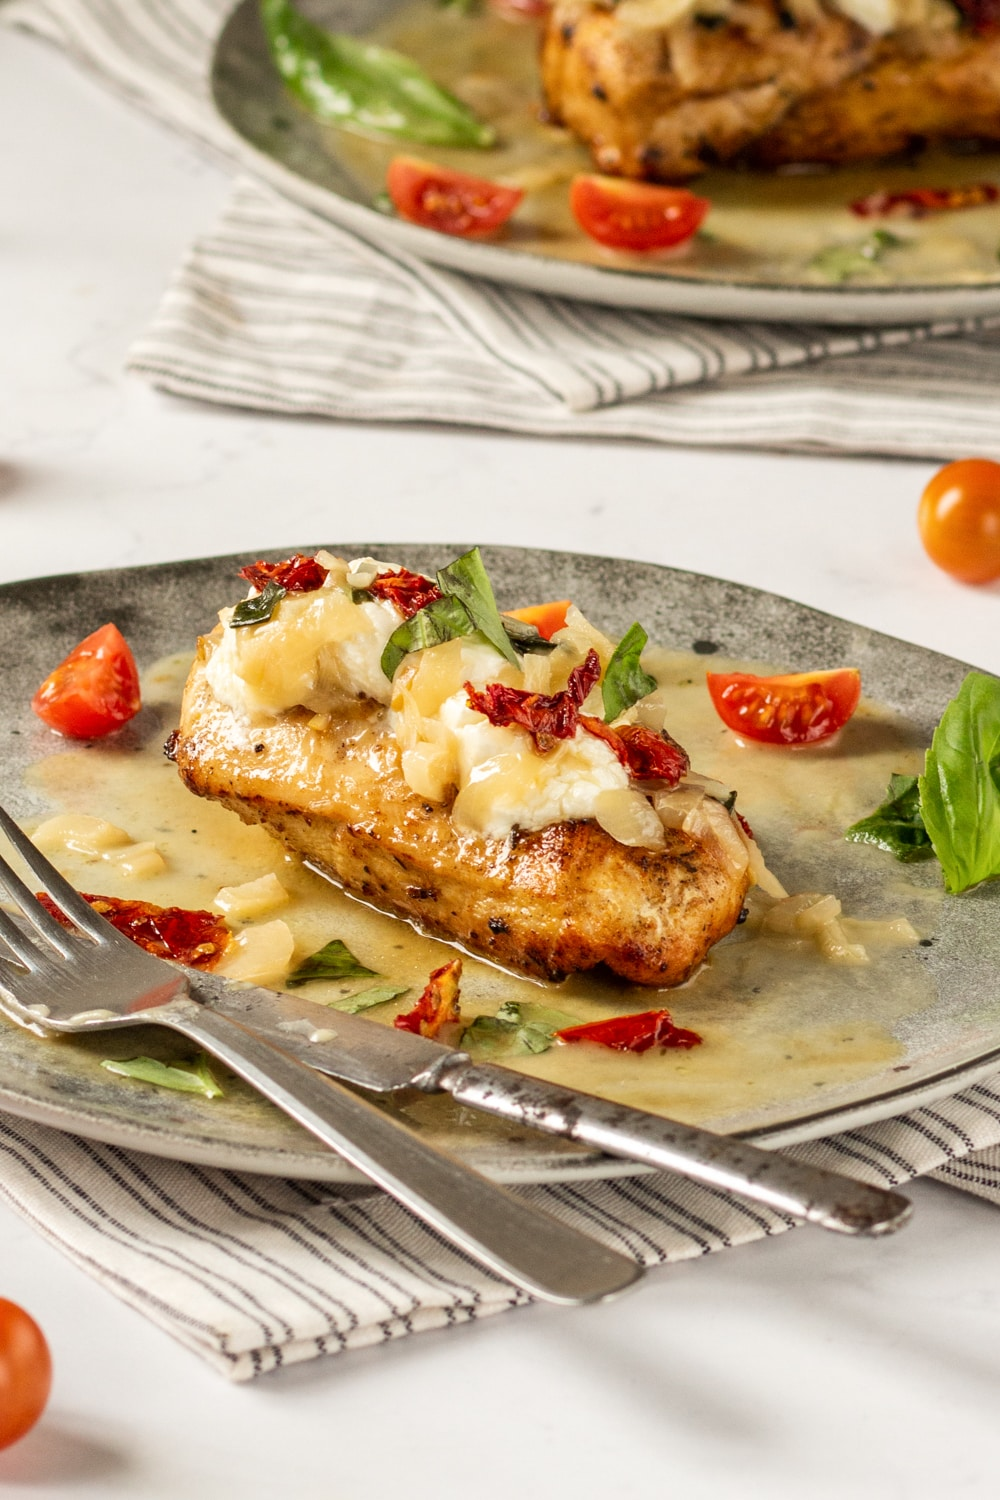 A chicken breast on a grey plate. There is a fork and a knife next to the chicken, and the chicken is topped with cheese, sun-dried tomatoes, and basil.